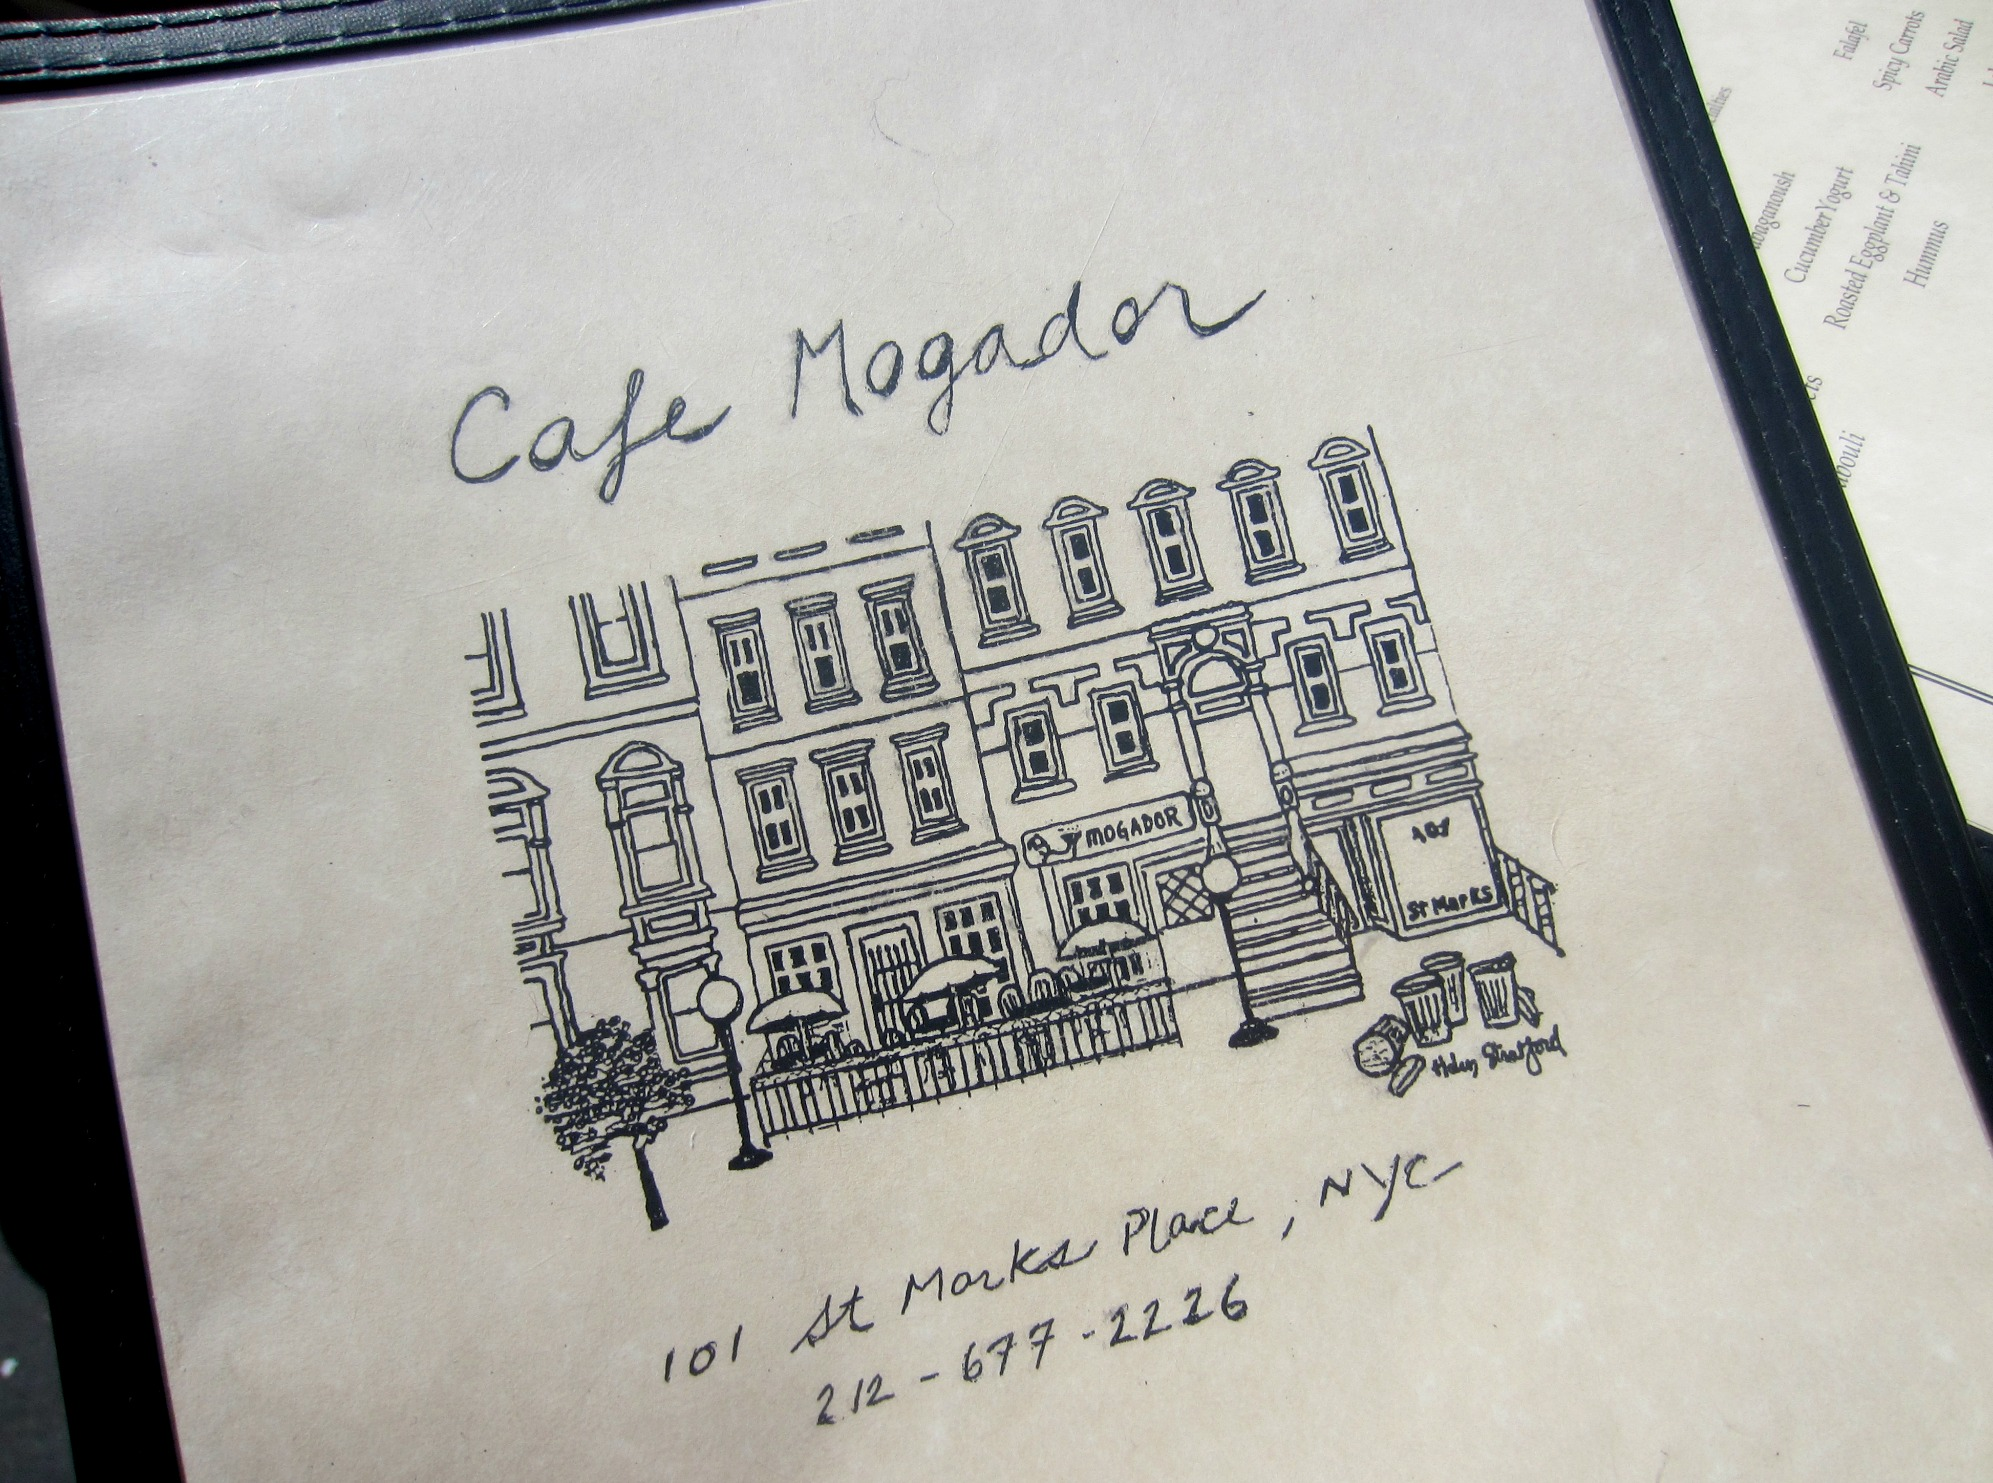 cafe mogador east village nyc